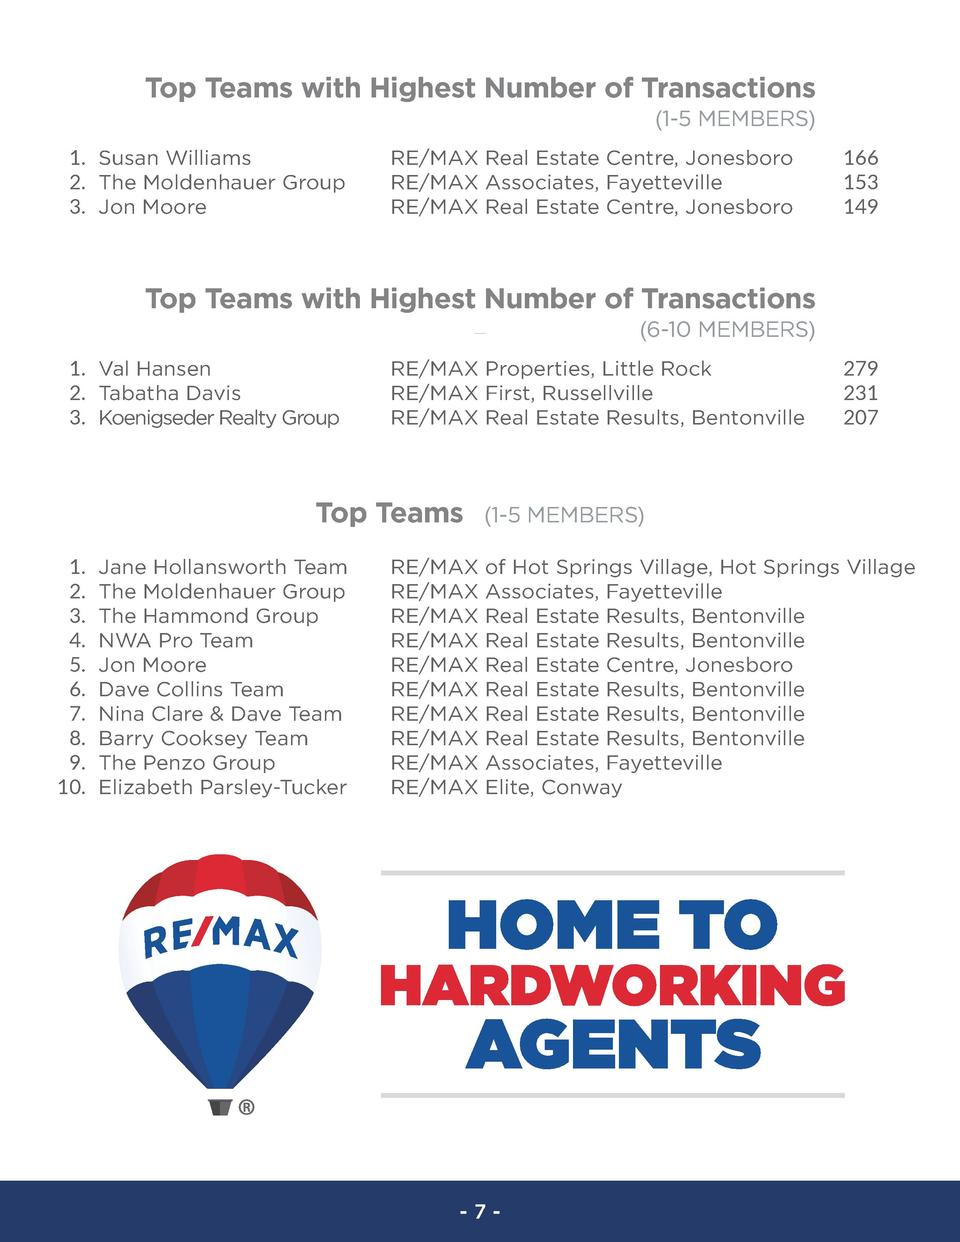 Top Teams with Highest Number of Transactions  1-5 MEMBERS  1. Susan Williams 2. The Moldenhauer Group 3. Jon Moore  RE MA...